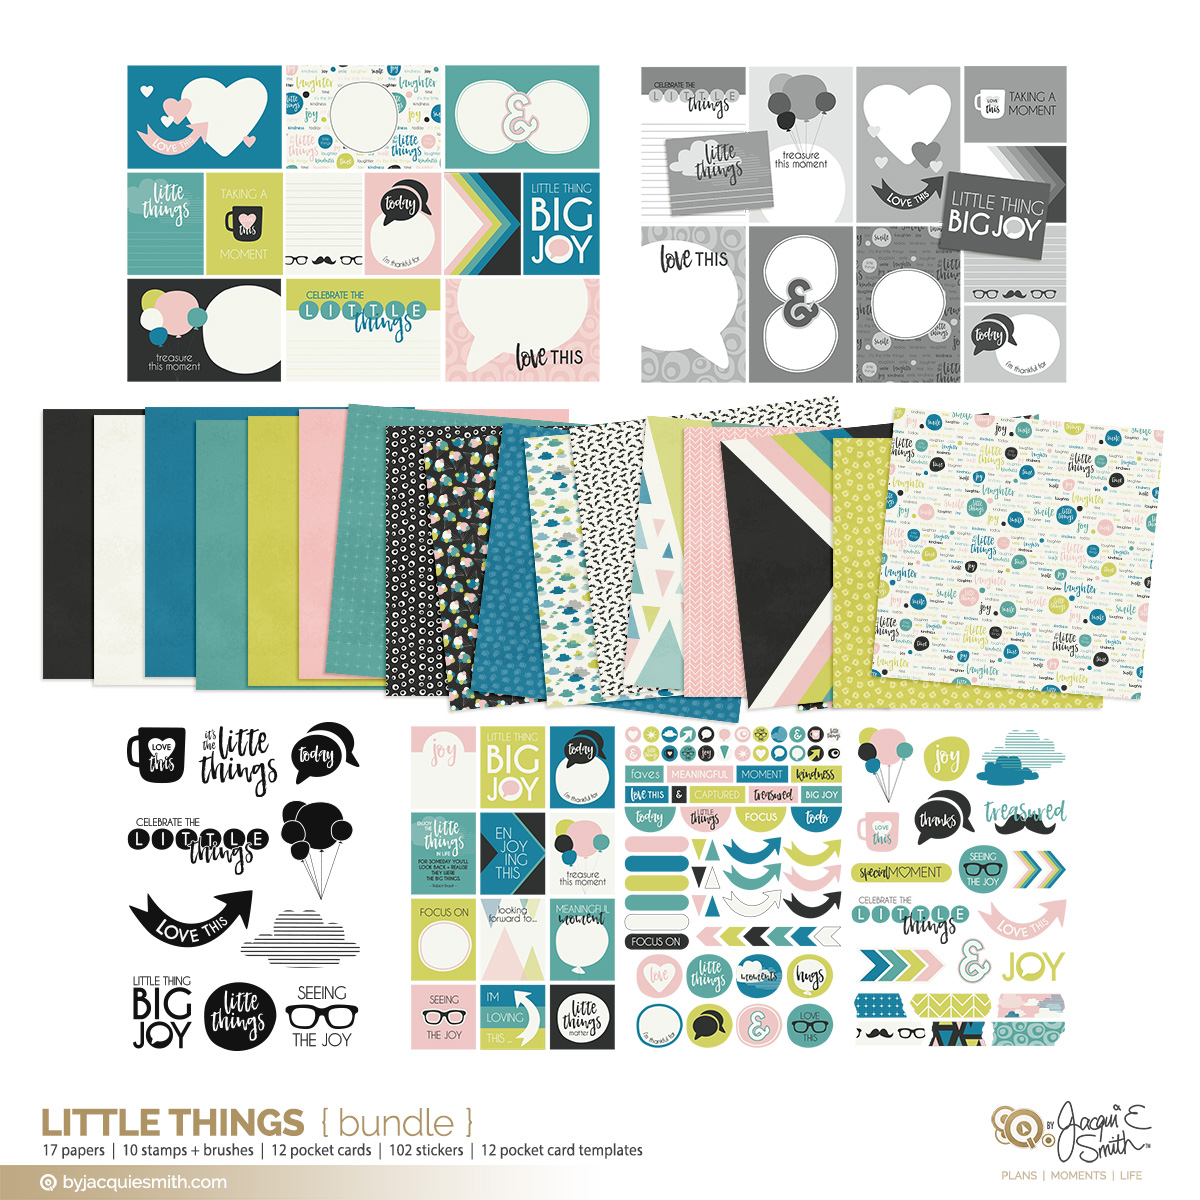 digital craft bundle, digital papers, printable planner stickers, pocket journal cards, photoshop stamps, photoshop elements brushes, pocket card layered templates, scrapbooking supplies, memory keeping products, planner printables, byjacquiesmith